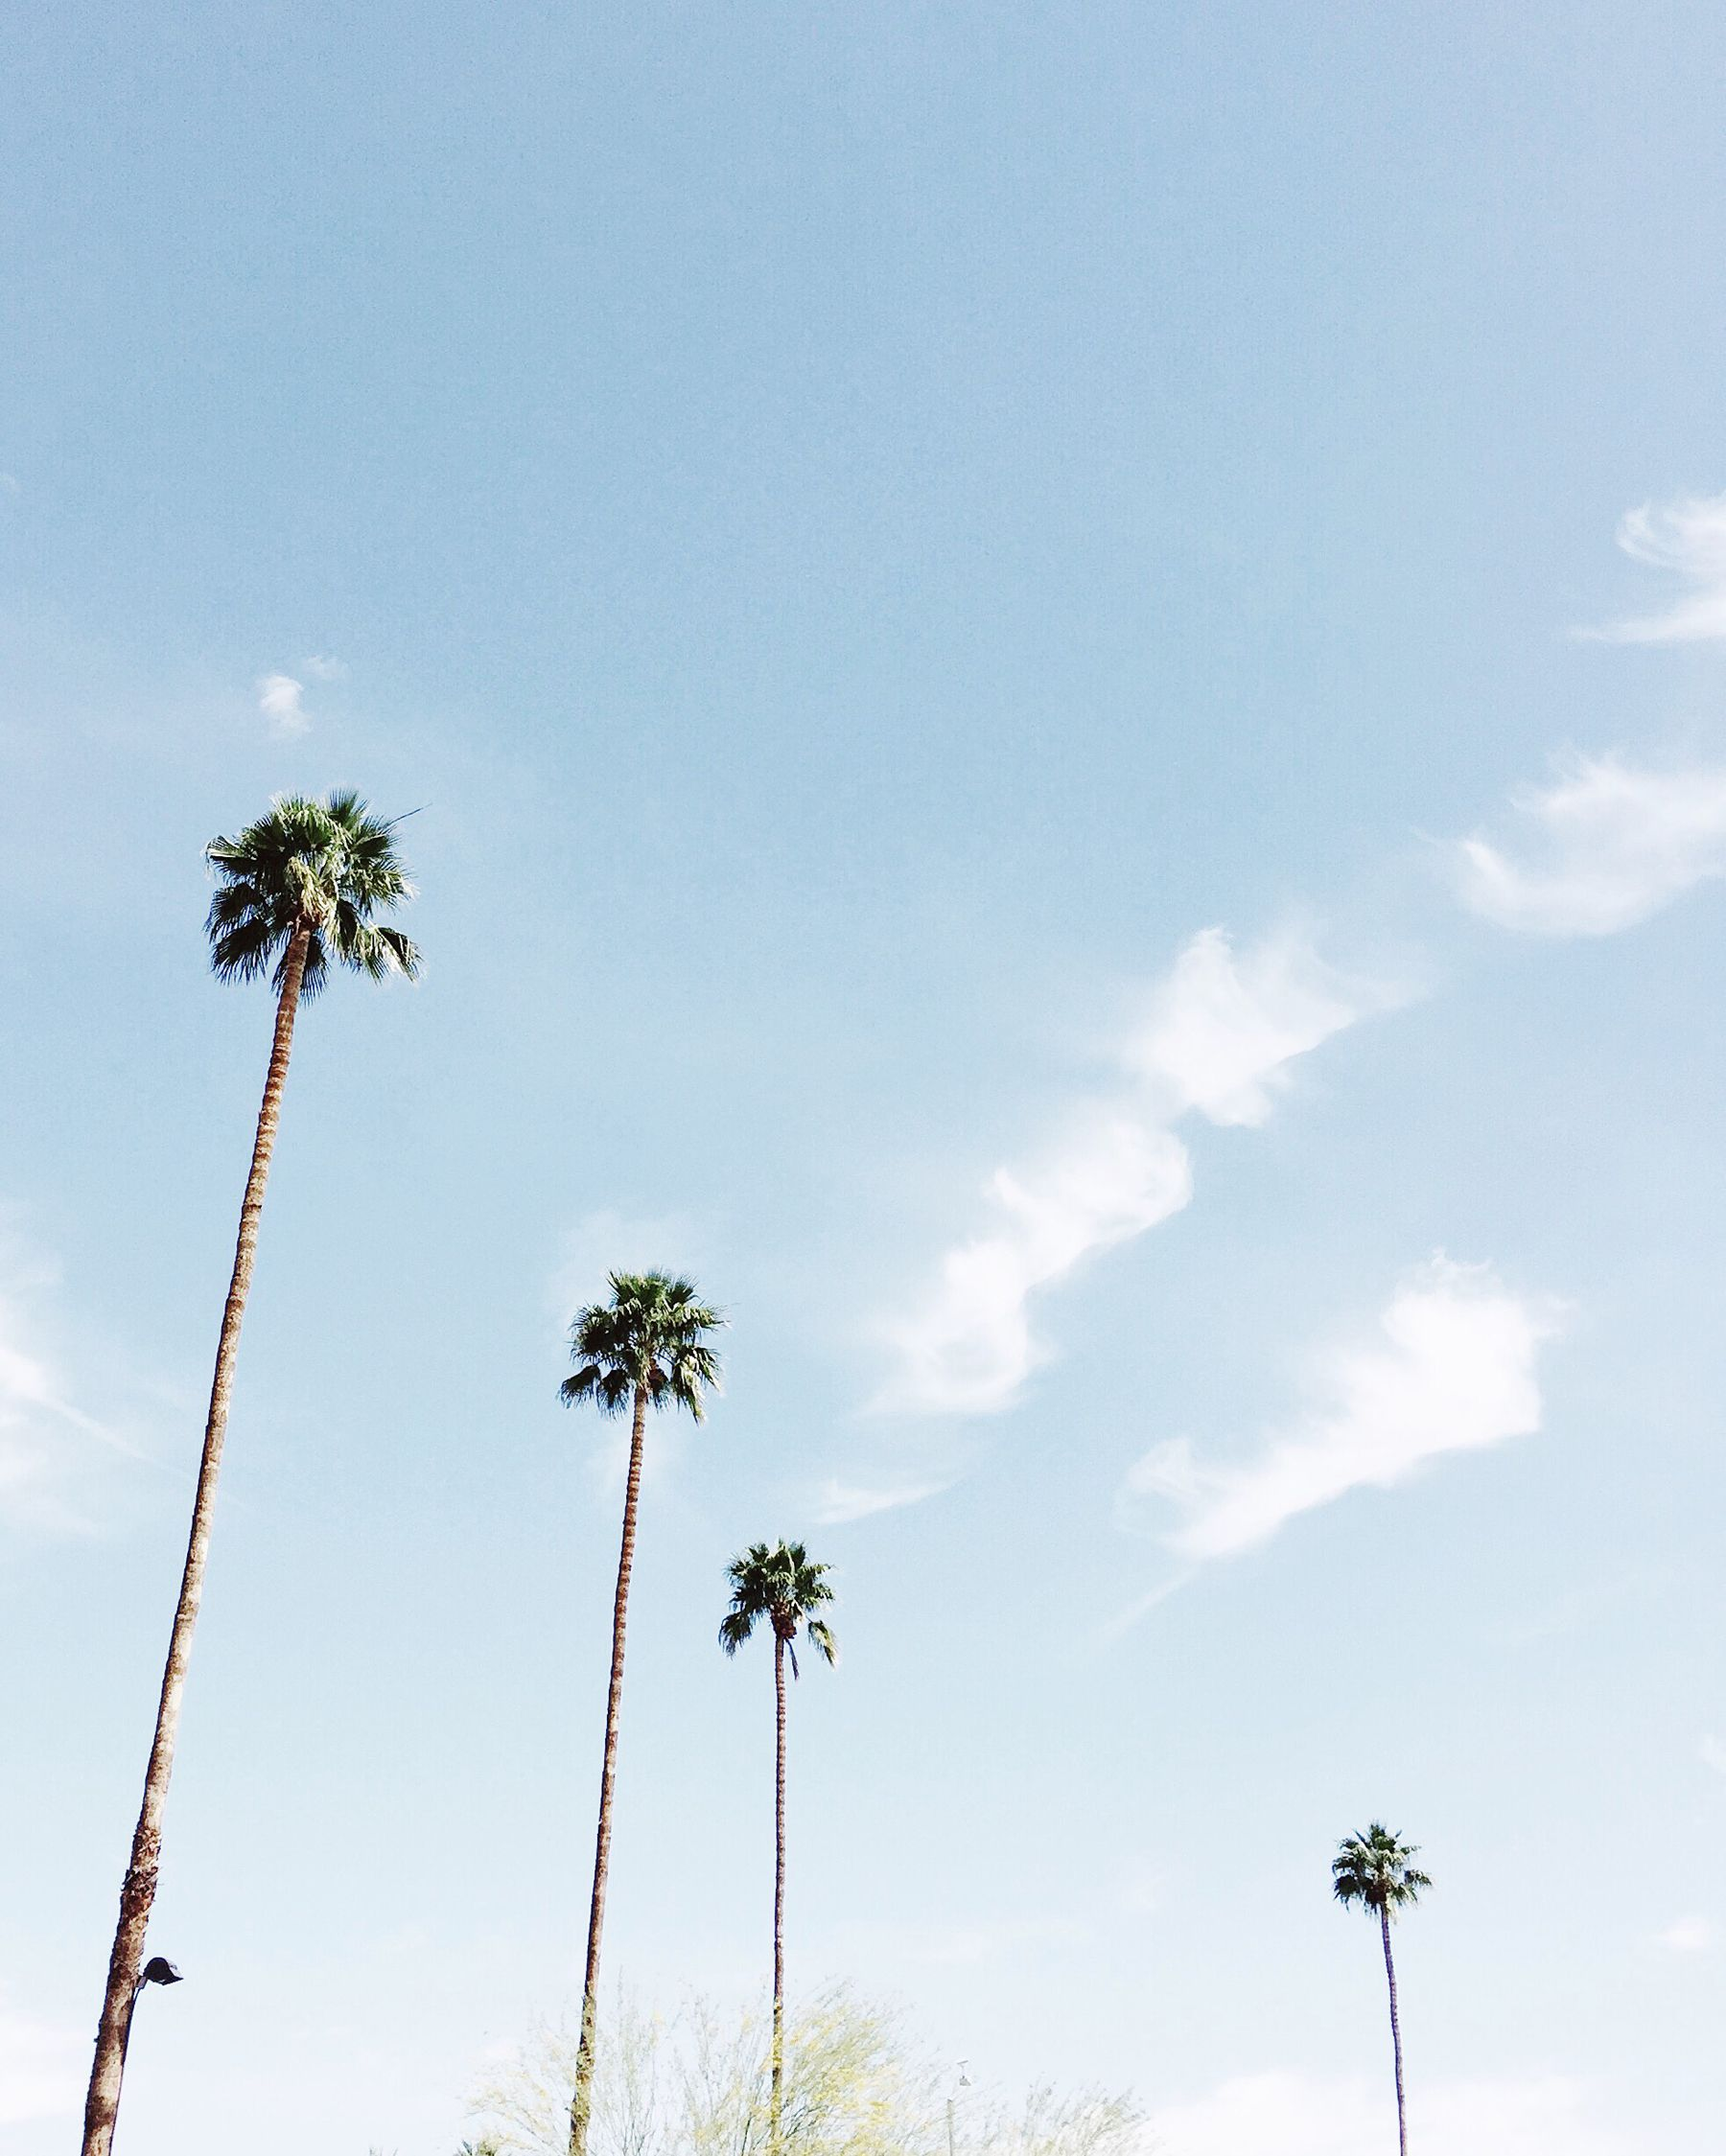 Palm Tree Iphone Wallpaper: Palm Springs Palm Trees. Via Mija